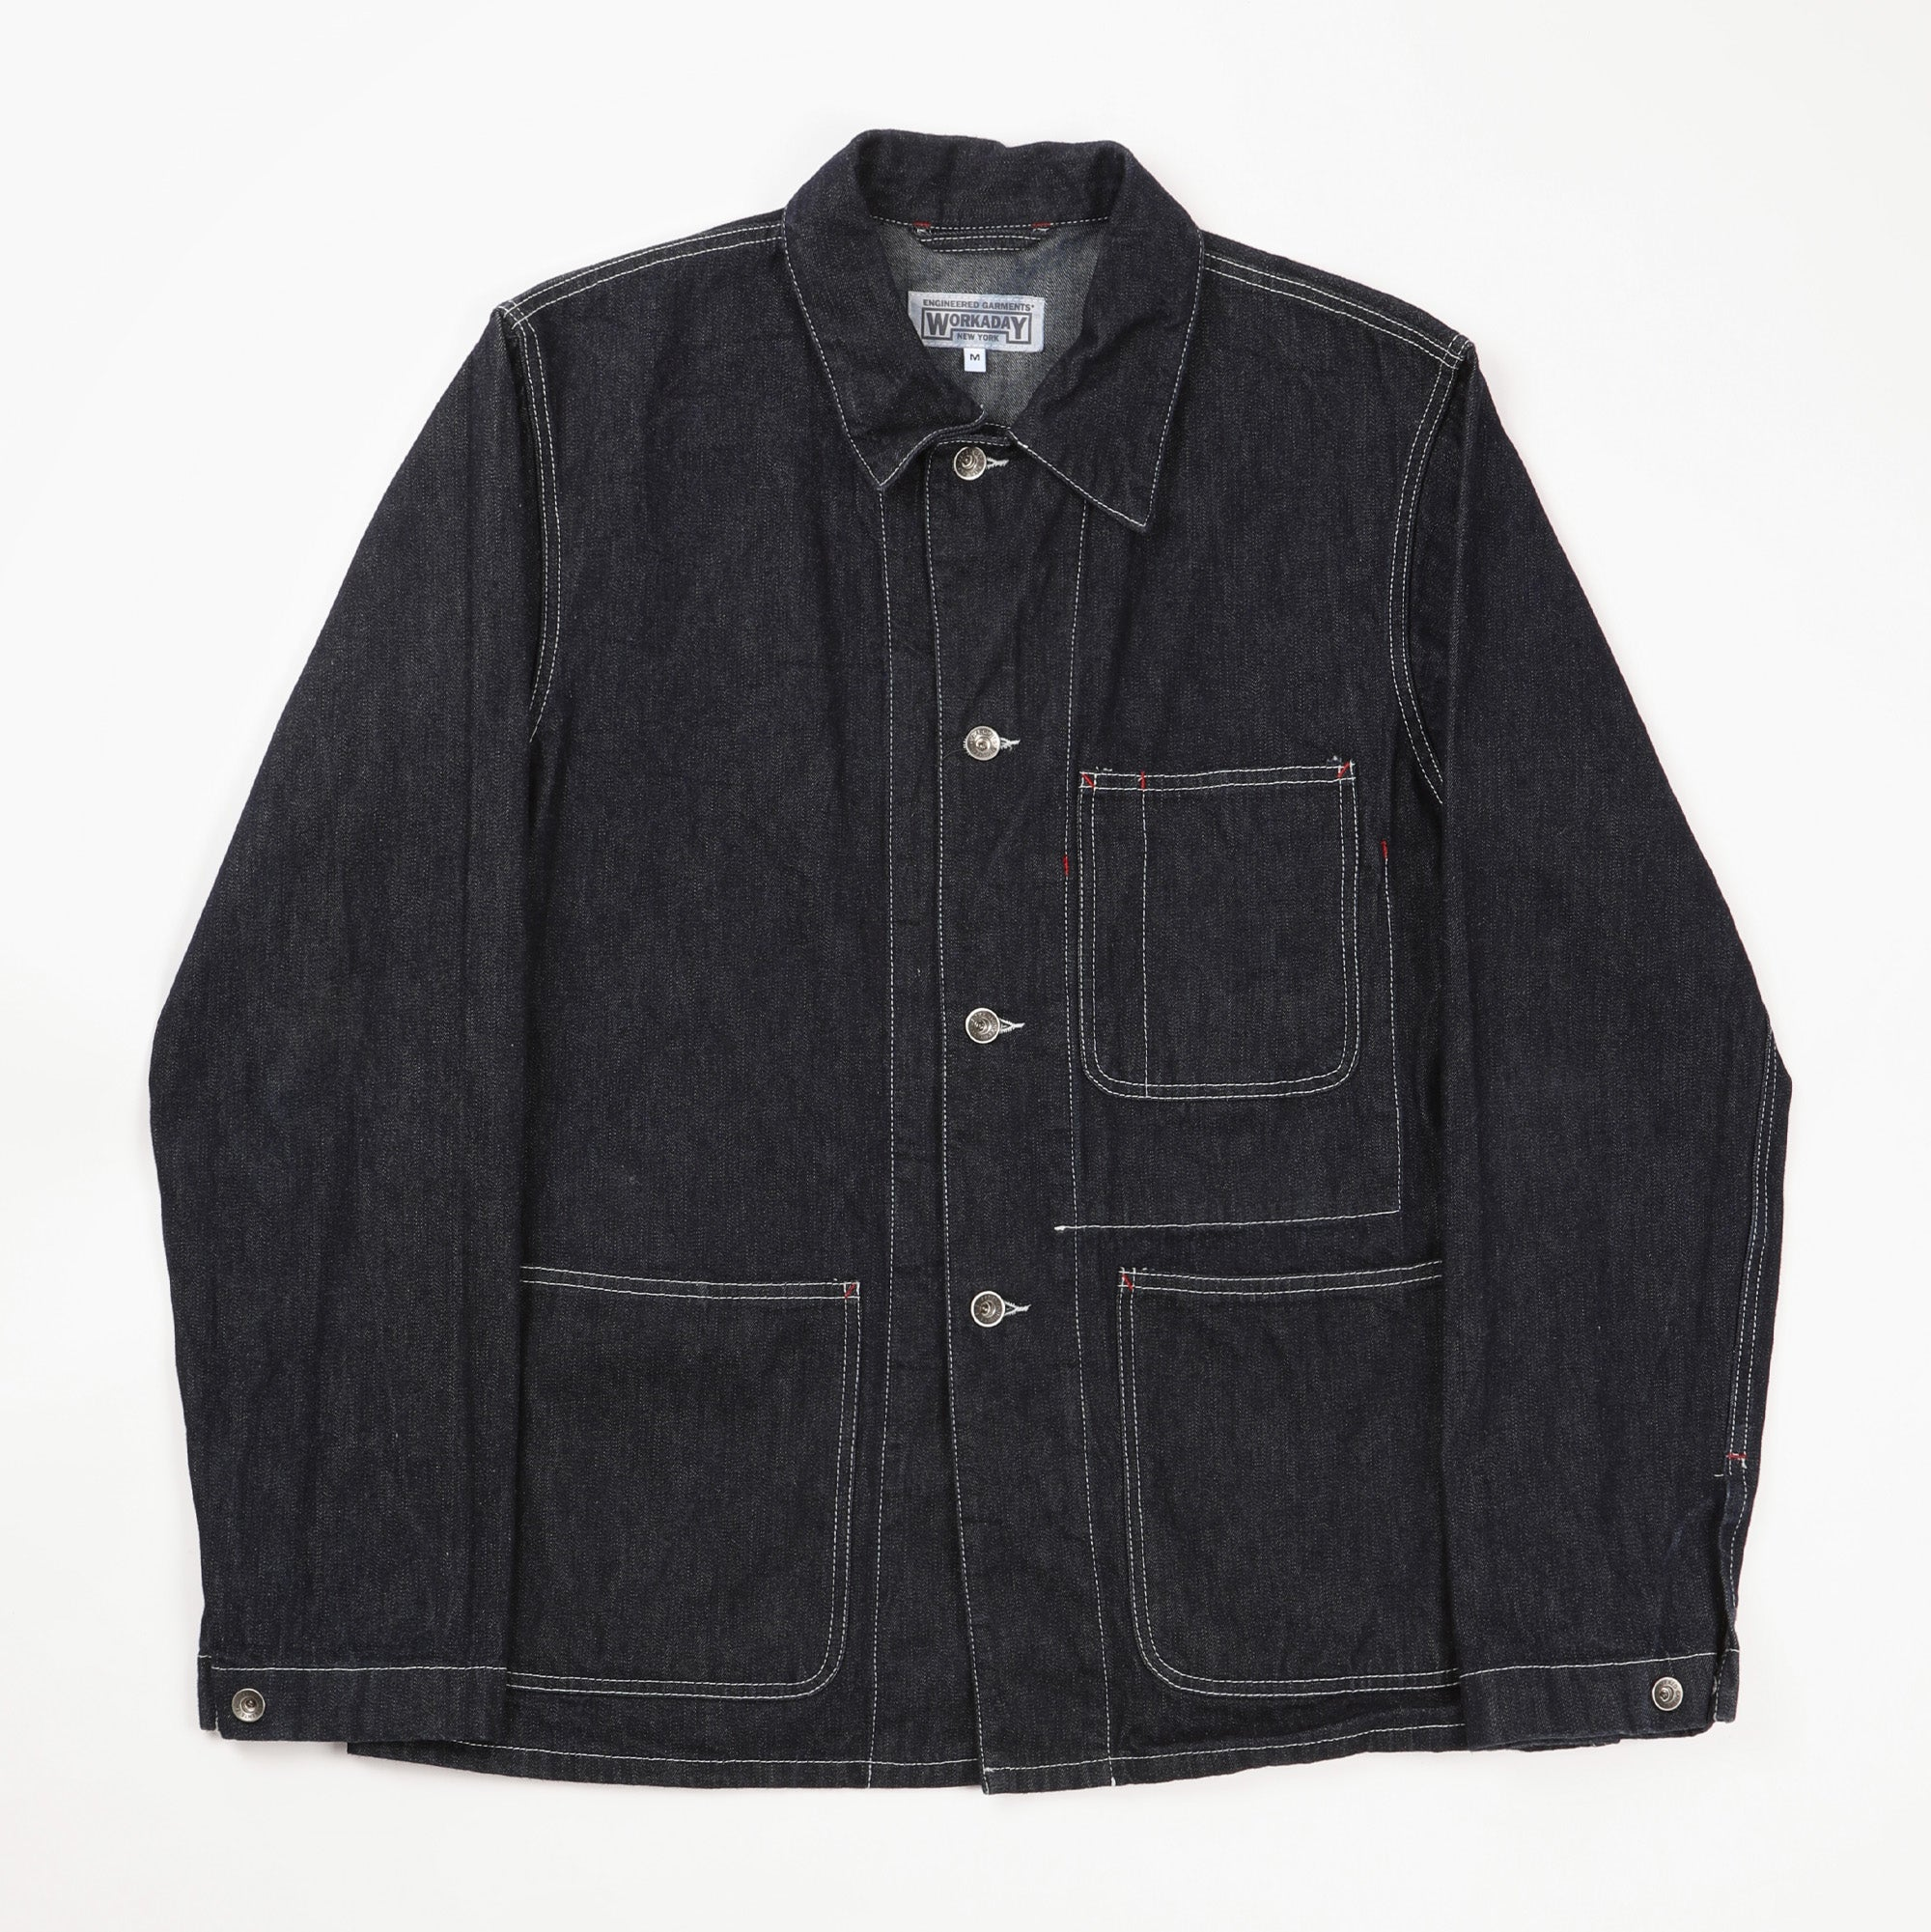 Workaday Denim Chore Jacket